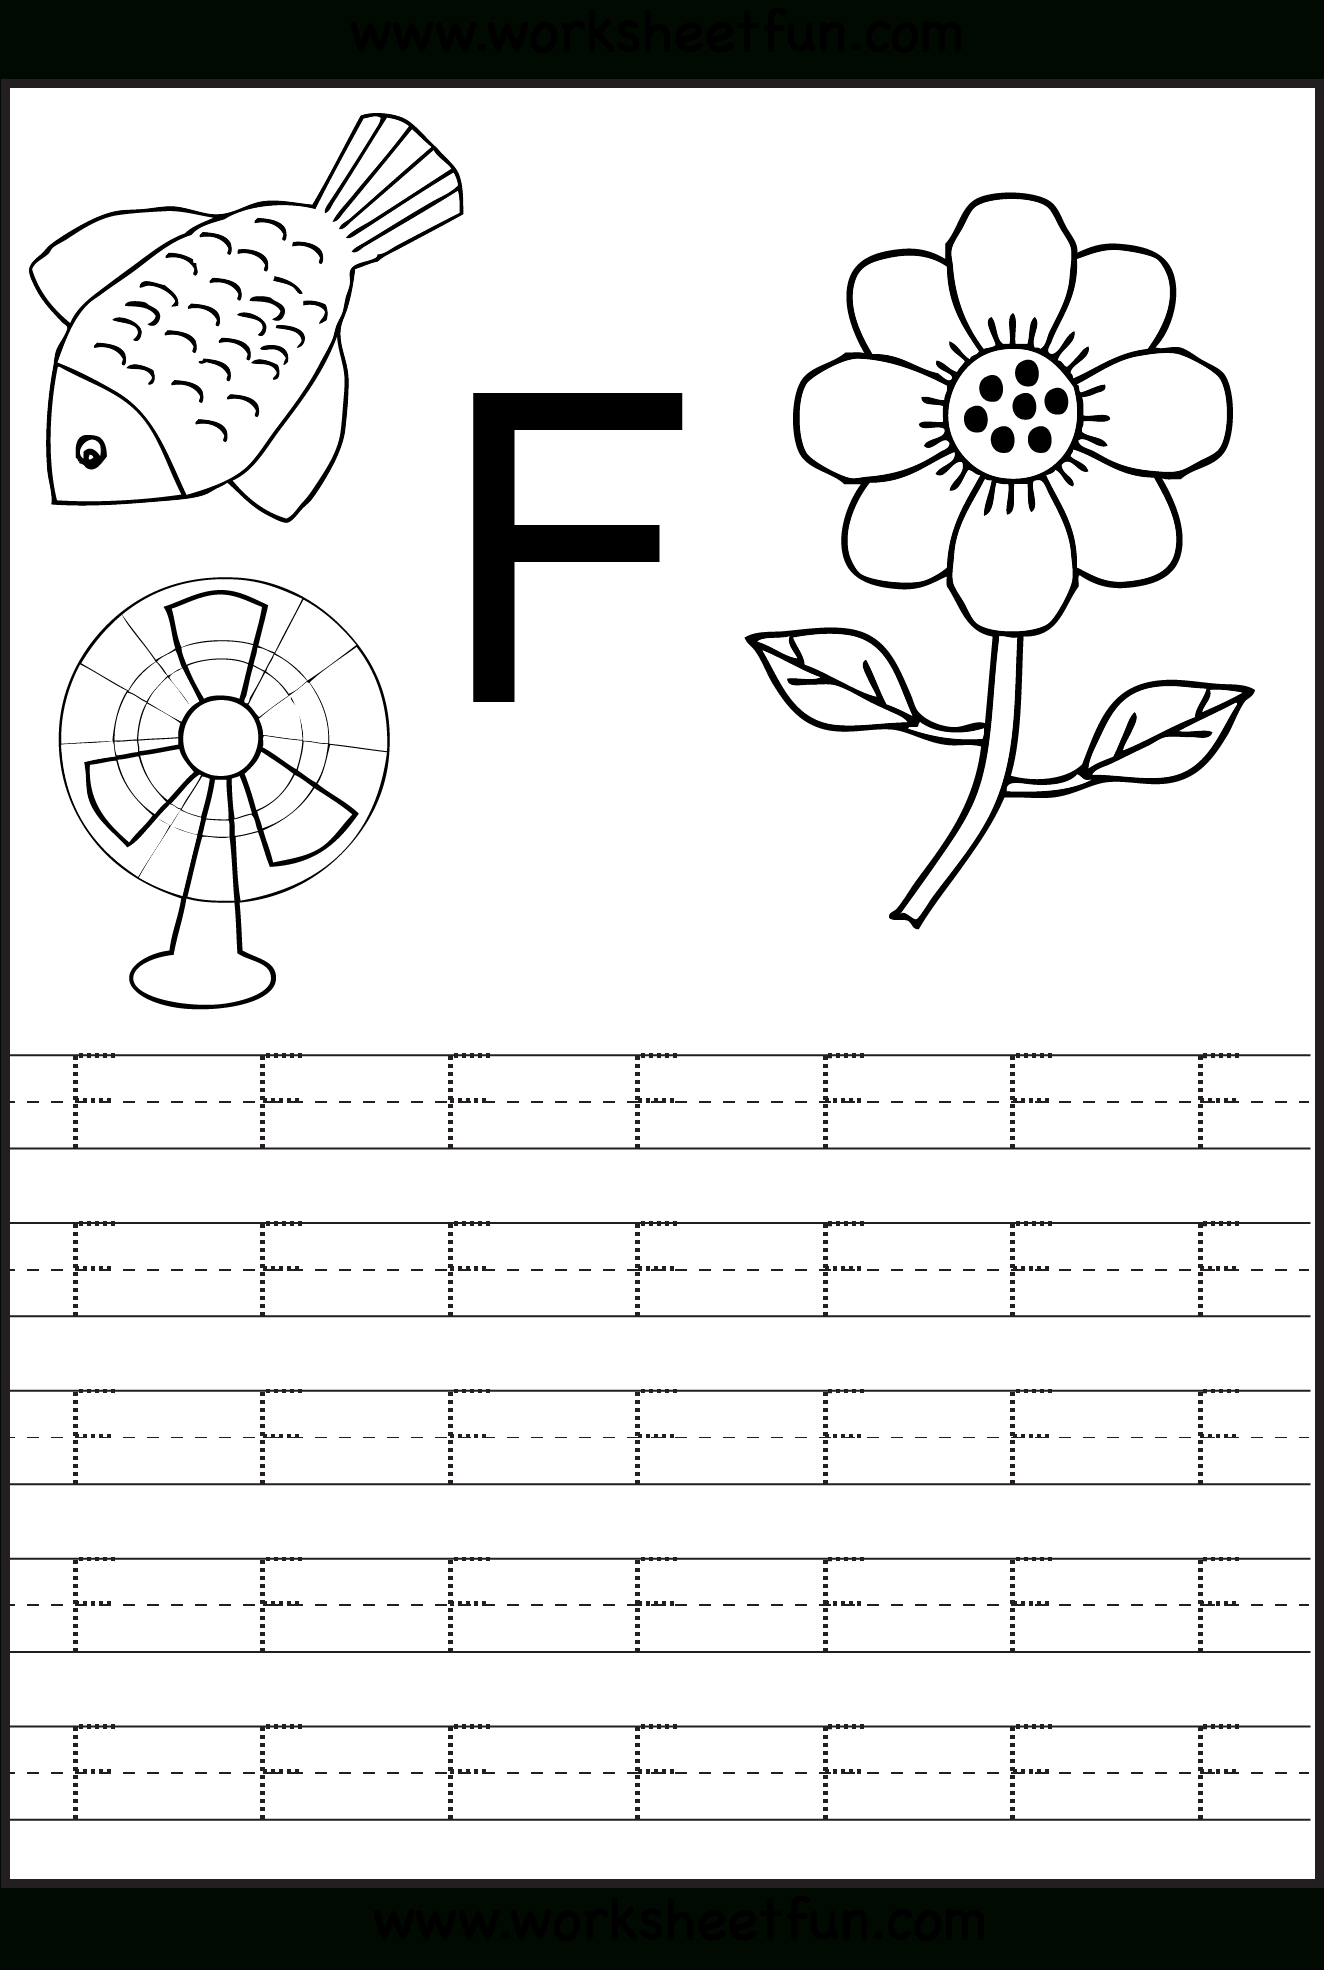 Letter F Worksheets | H3Dwallpapers - High Definition Free with regard to F Letter Worksheets